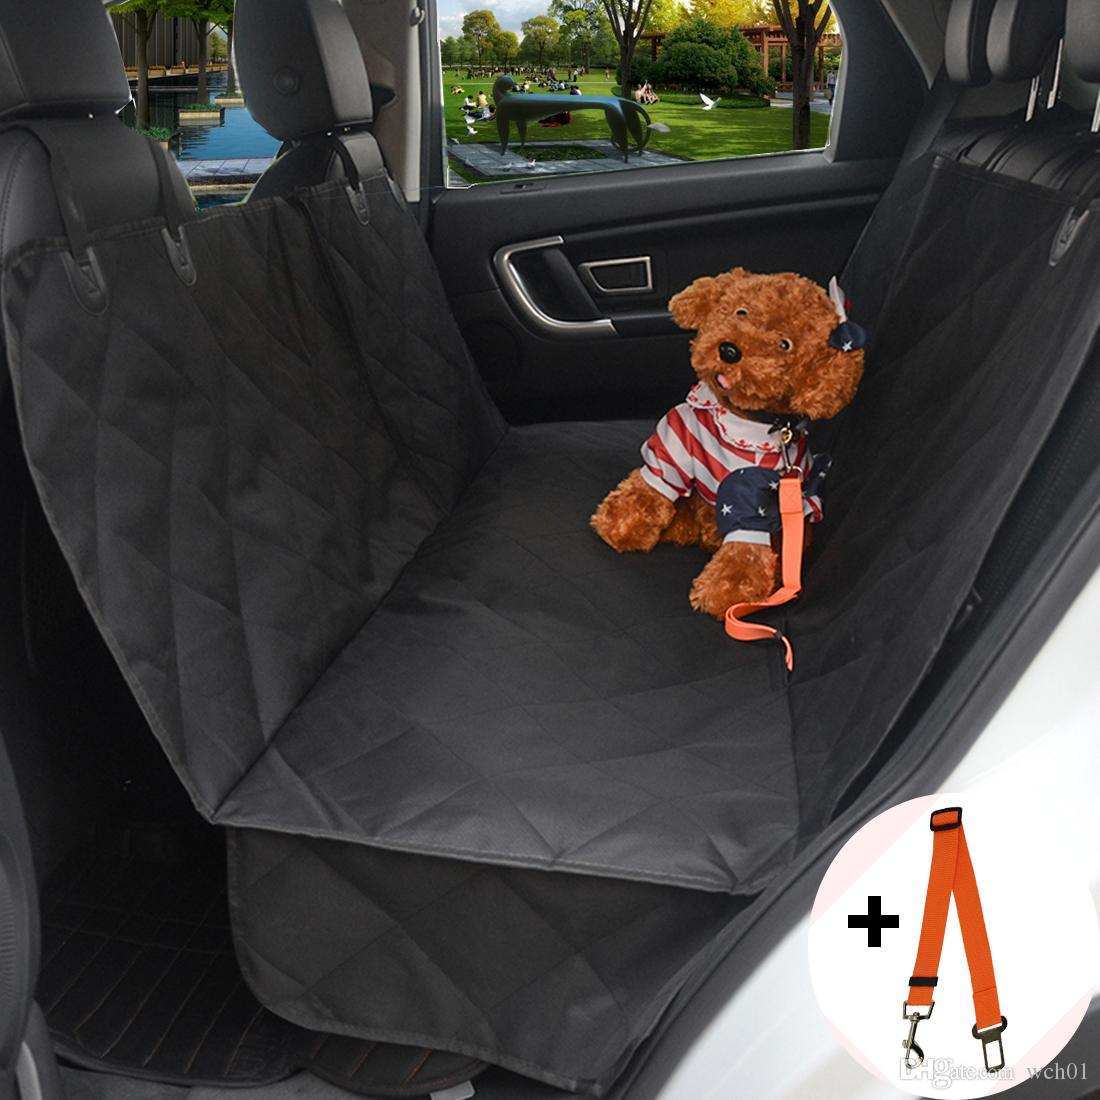 ultimate seat waterproof dog pin hammock cover deluxe pet car protector non